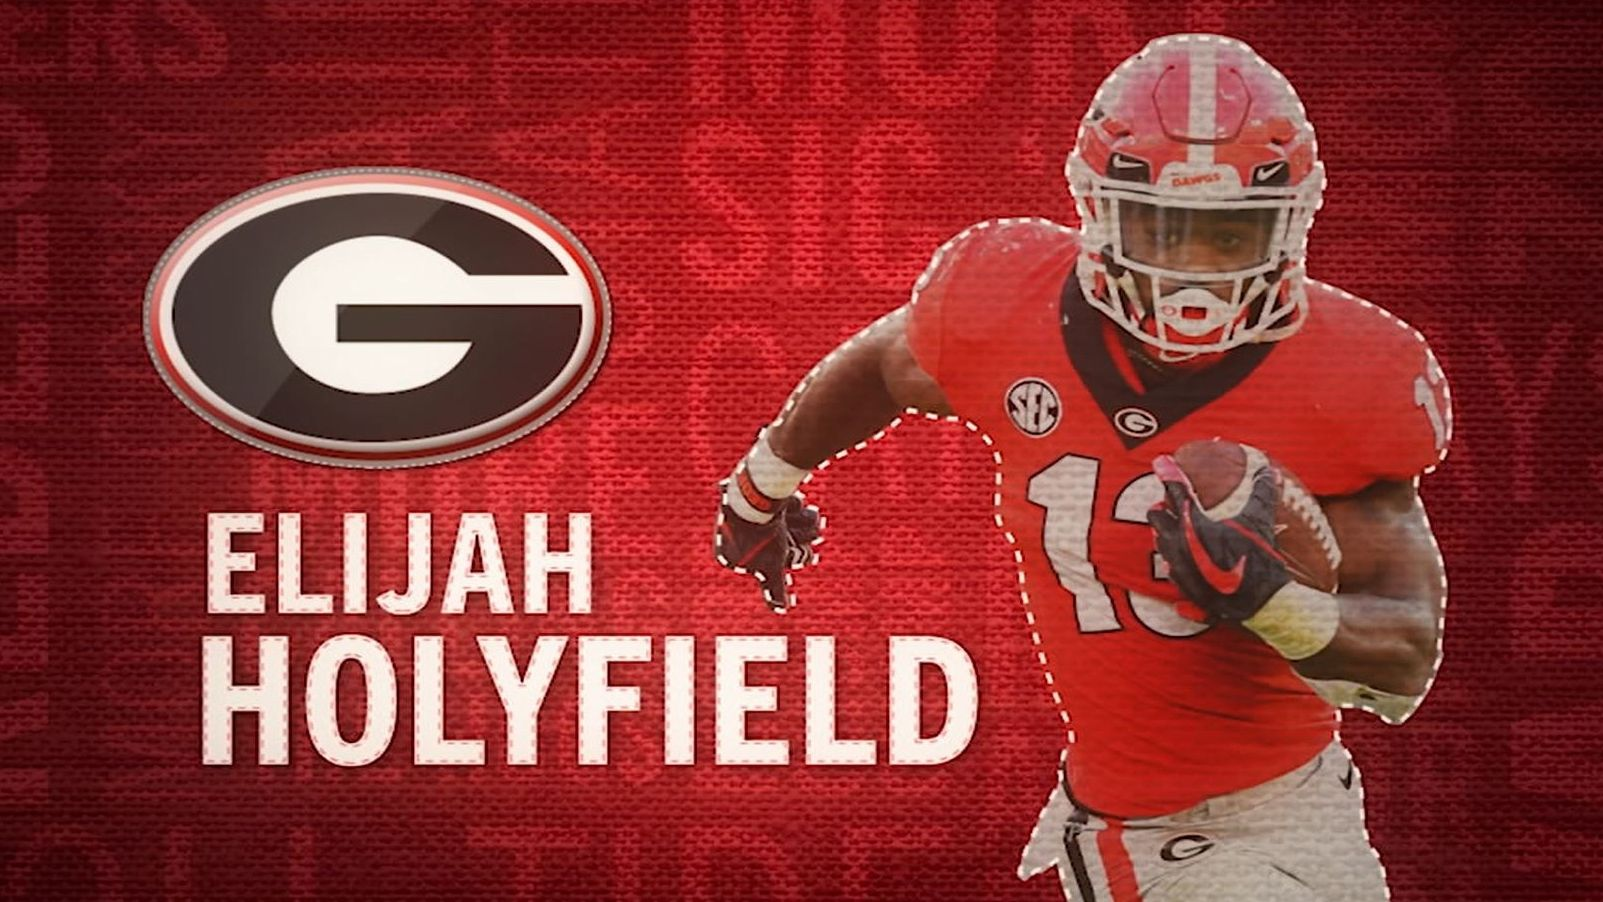 I am the SEC: Georgia's Elijah Holyfield